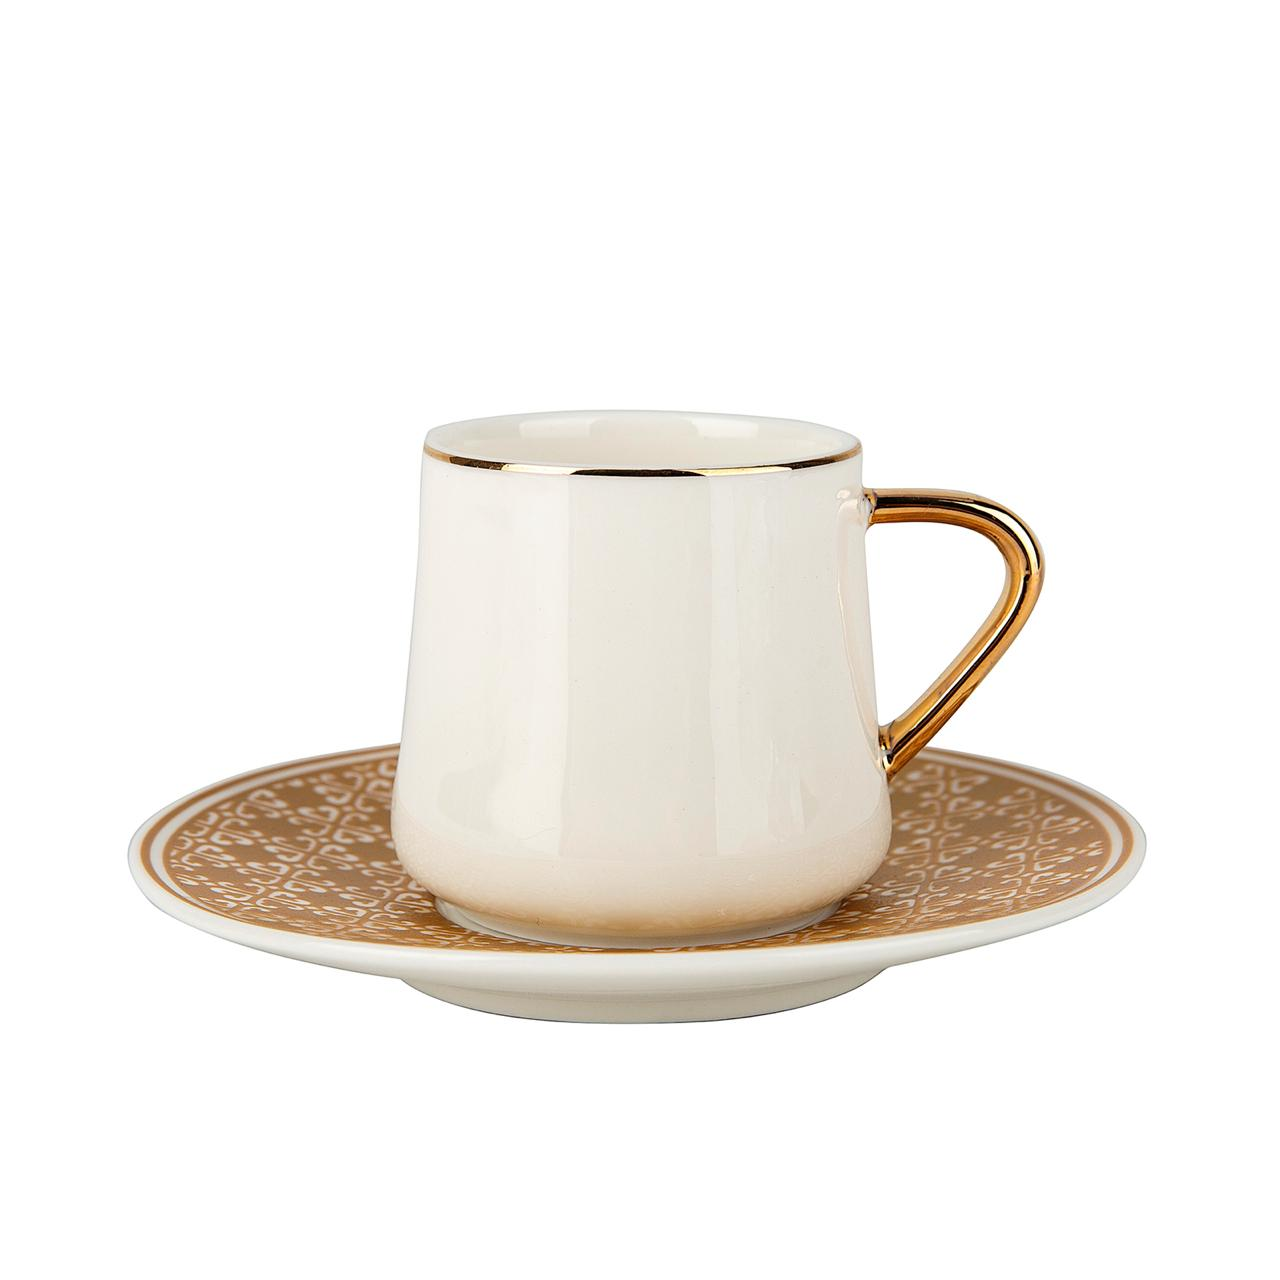 Ellen 6 Seater Coffee Cup Set   153.03.07.7497 -  طقم فناجين قهوة 6 مقاعد من إيلين - Shop Online Furniture and Home Decor Store in Dubai, UAE at ebarza